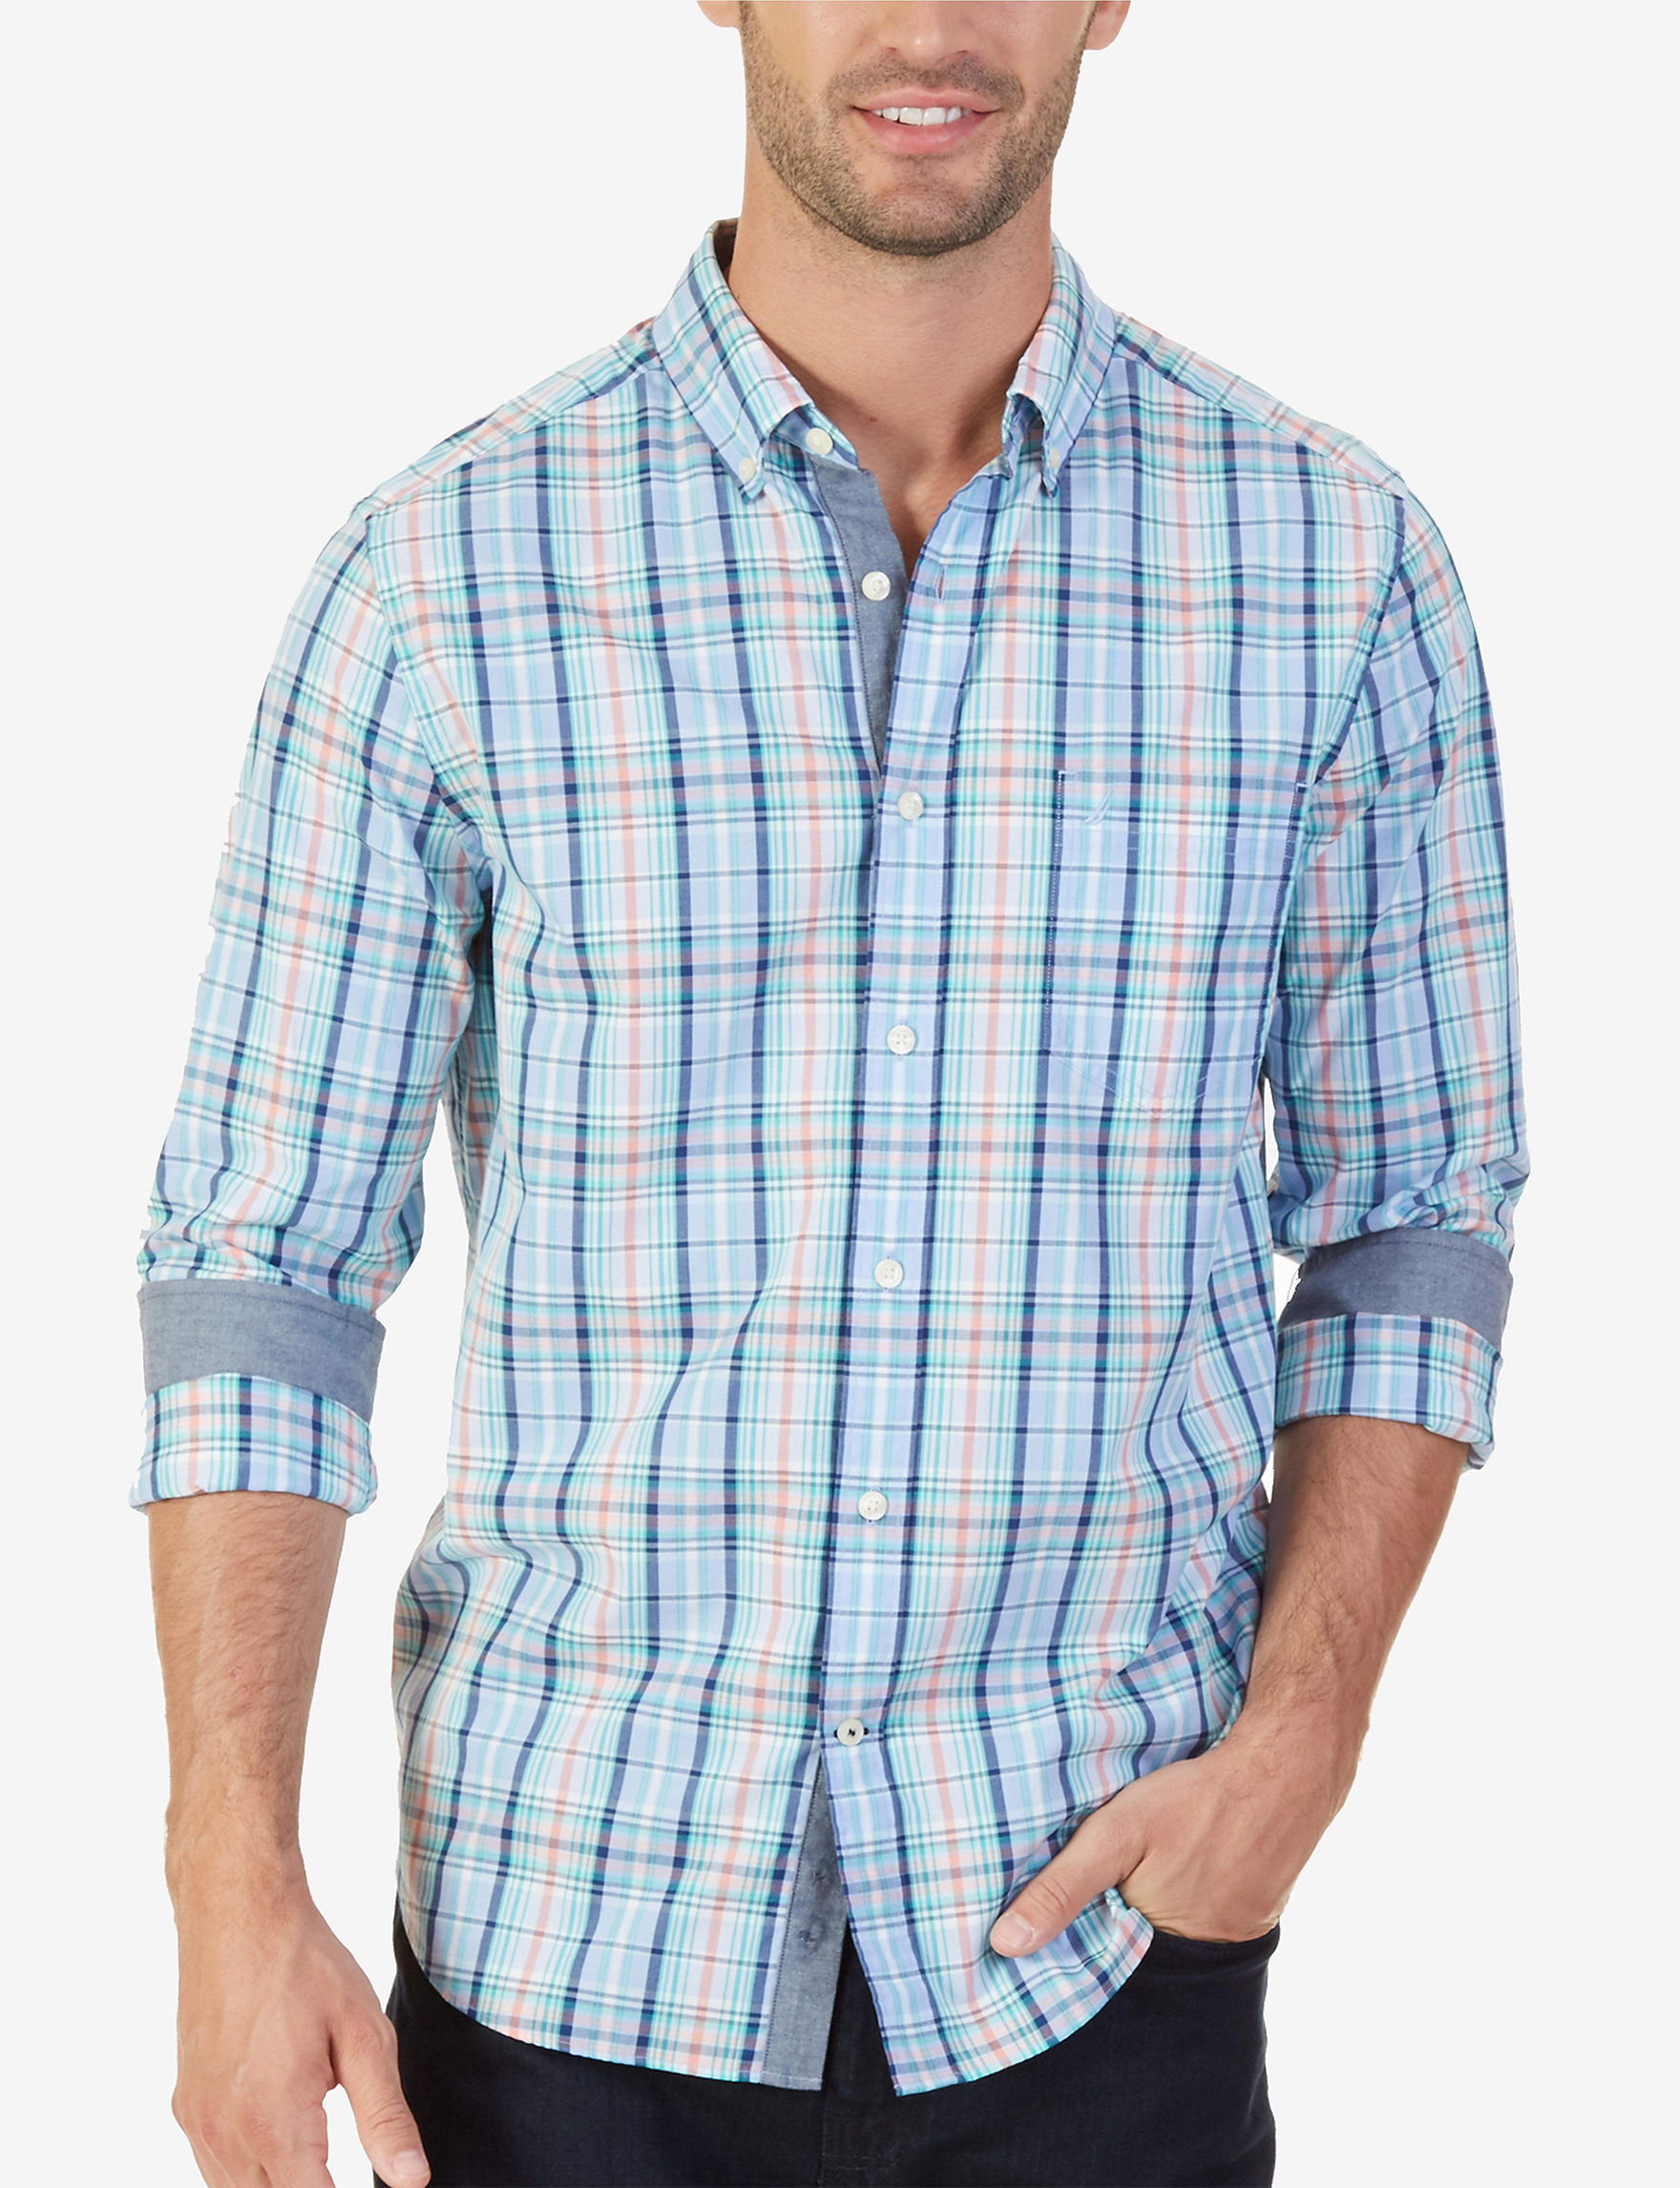 Nautica Blue Plaid Casual Button Down Shirts